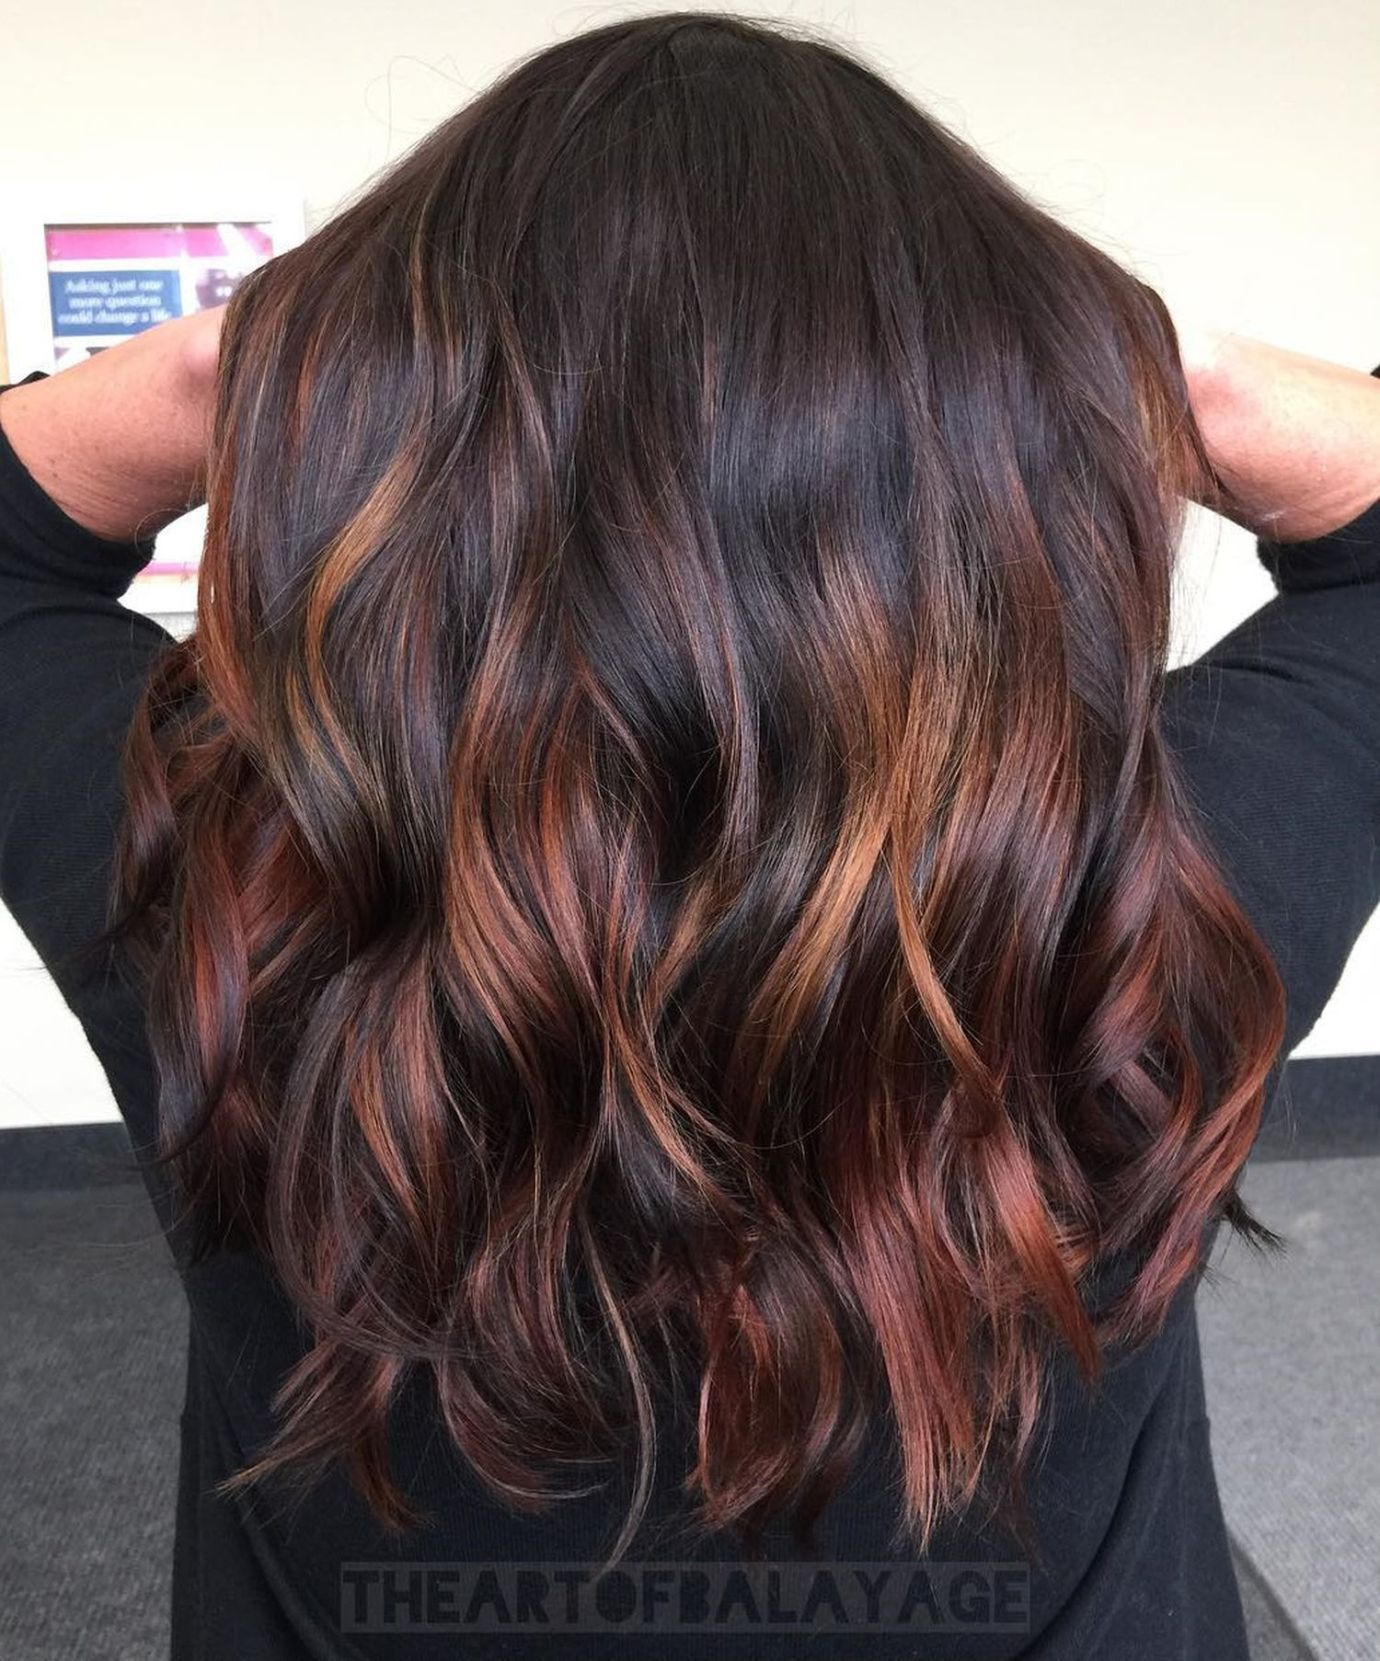 60 Hairstyles Featuring Dark Brown Hair With Highlights Hair Highlights Brown Hair With Highlights Red Highlights In Brown Hair